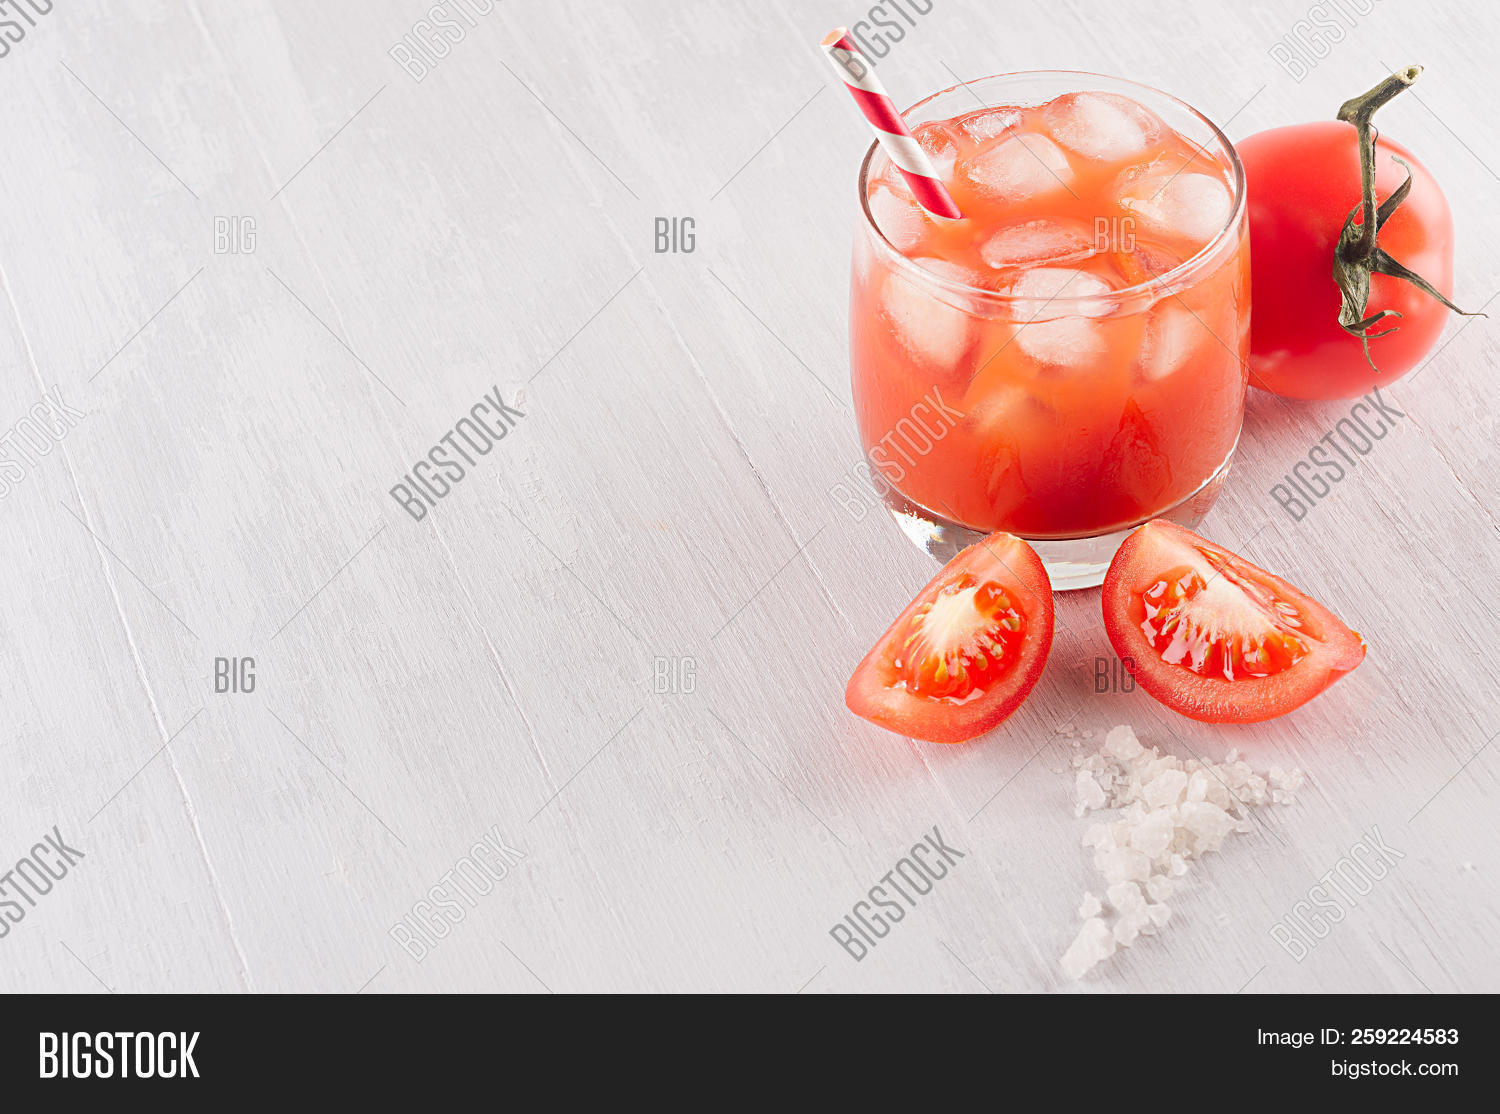 alcohol,alcoholic,background,beverage,bloody,board,border,bright,cocktail,cold,colorful,copy,cube,cut,delicious,diet,drink,drops,elegance,food,fresh,glass,glossy,healthy,ice,ingredient,juice,juicy,light,mary,misted,modern,organic,piece,pulpy,red,ripe,salt,simple,slice,soft,space,straw,tomato,vegetable,vegetarian,vitamin,white,wood